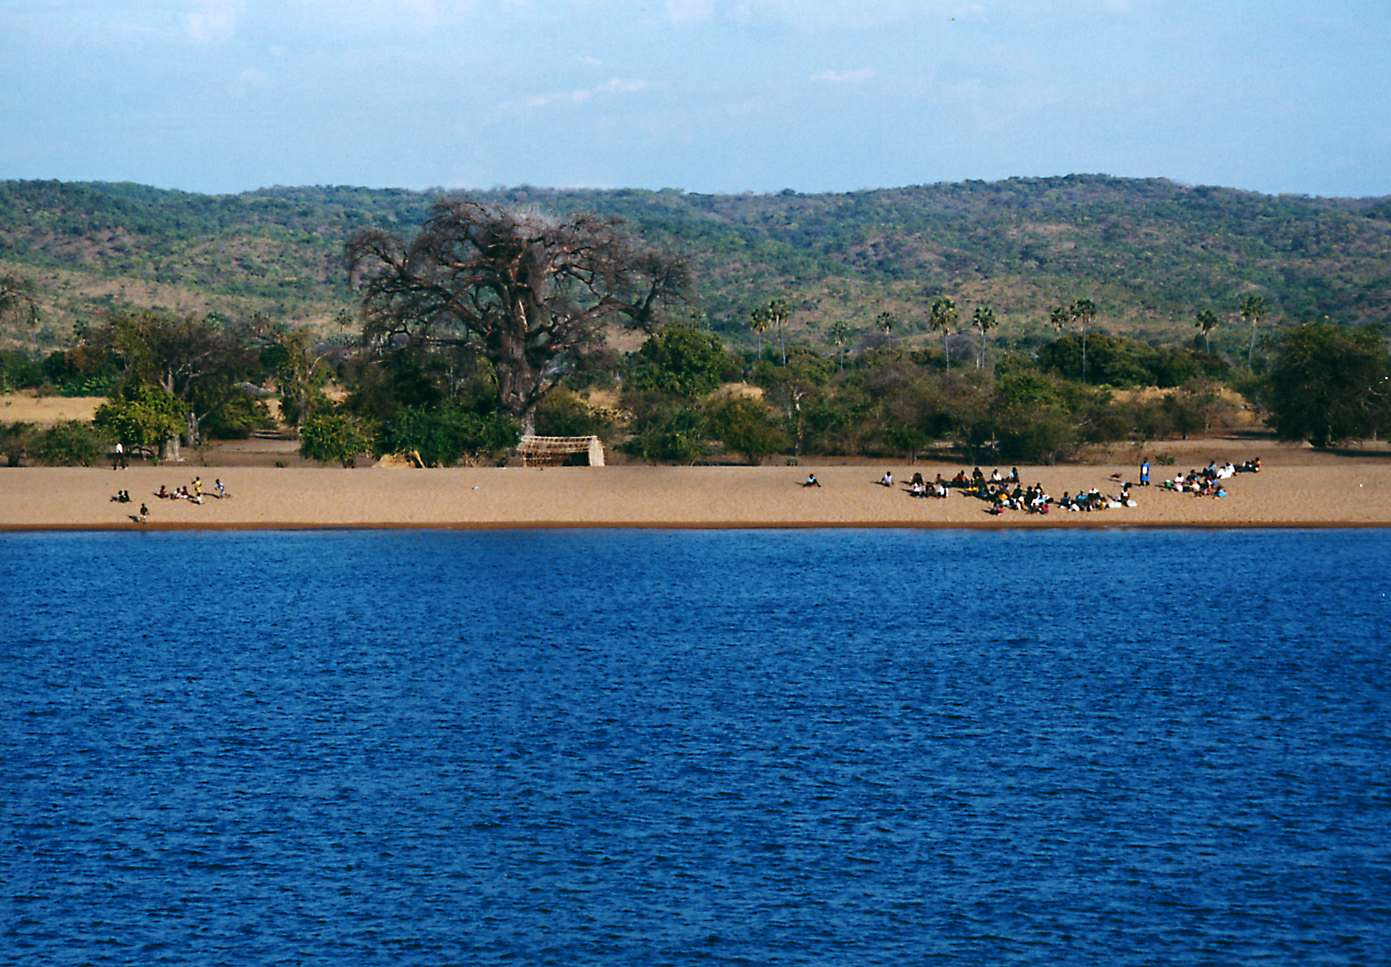 Coast of Lake Malawi on the Mozambican side. Source: Wikimedia Commons